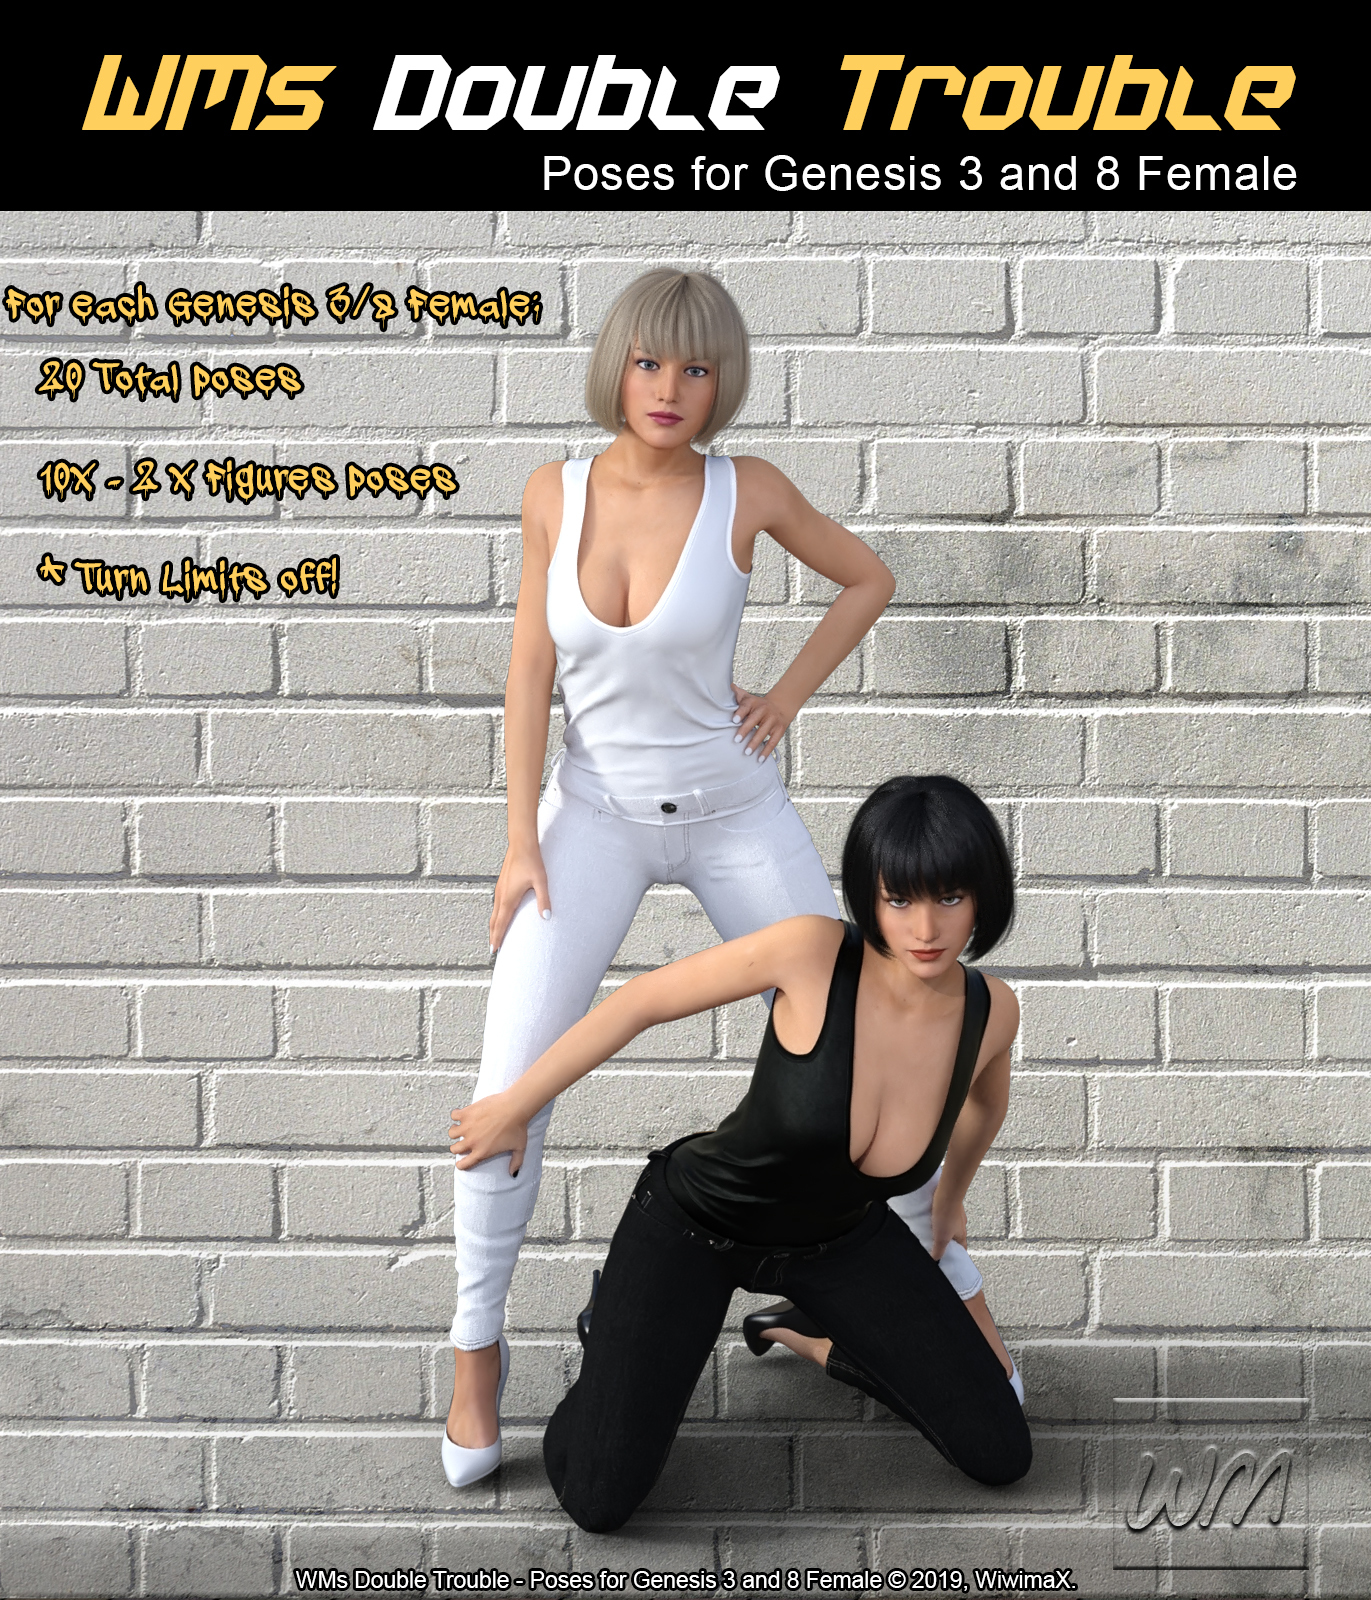 WMs Double Trouble - Poses for Genesis 3 and 8 Female by WiwimaX